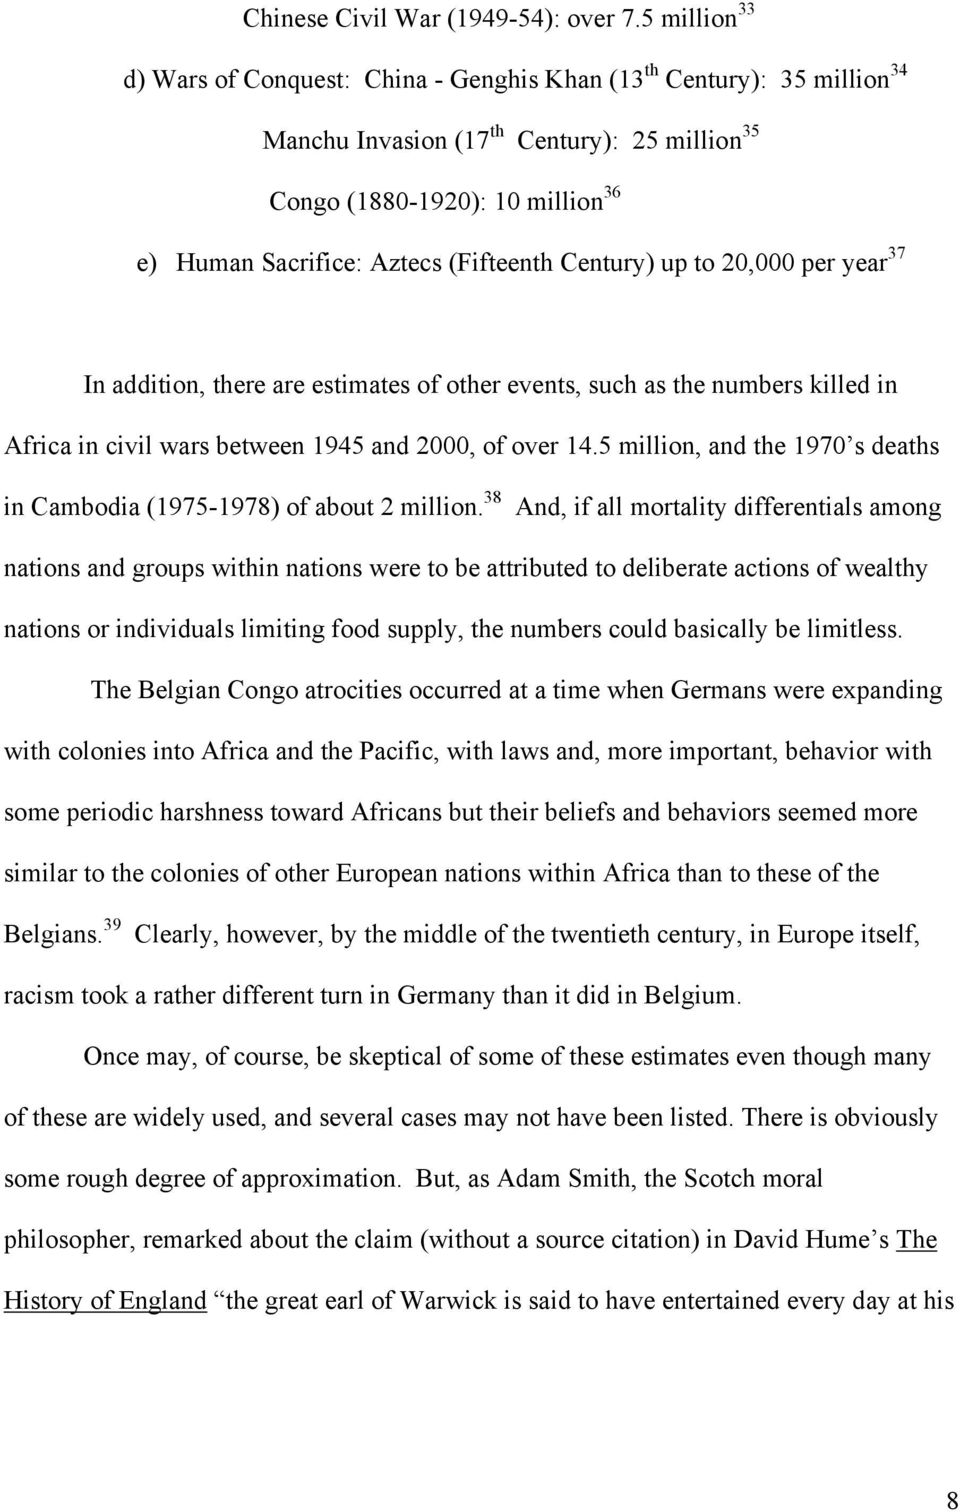 (Fifteenth Century) up to 20,000 per year 37 In addition, there are estimates of other events, such as the numbers killed in Africa in civil wars between 1945 and 2000, of over 14.